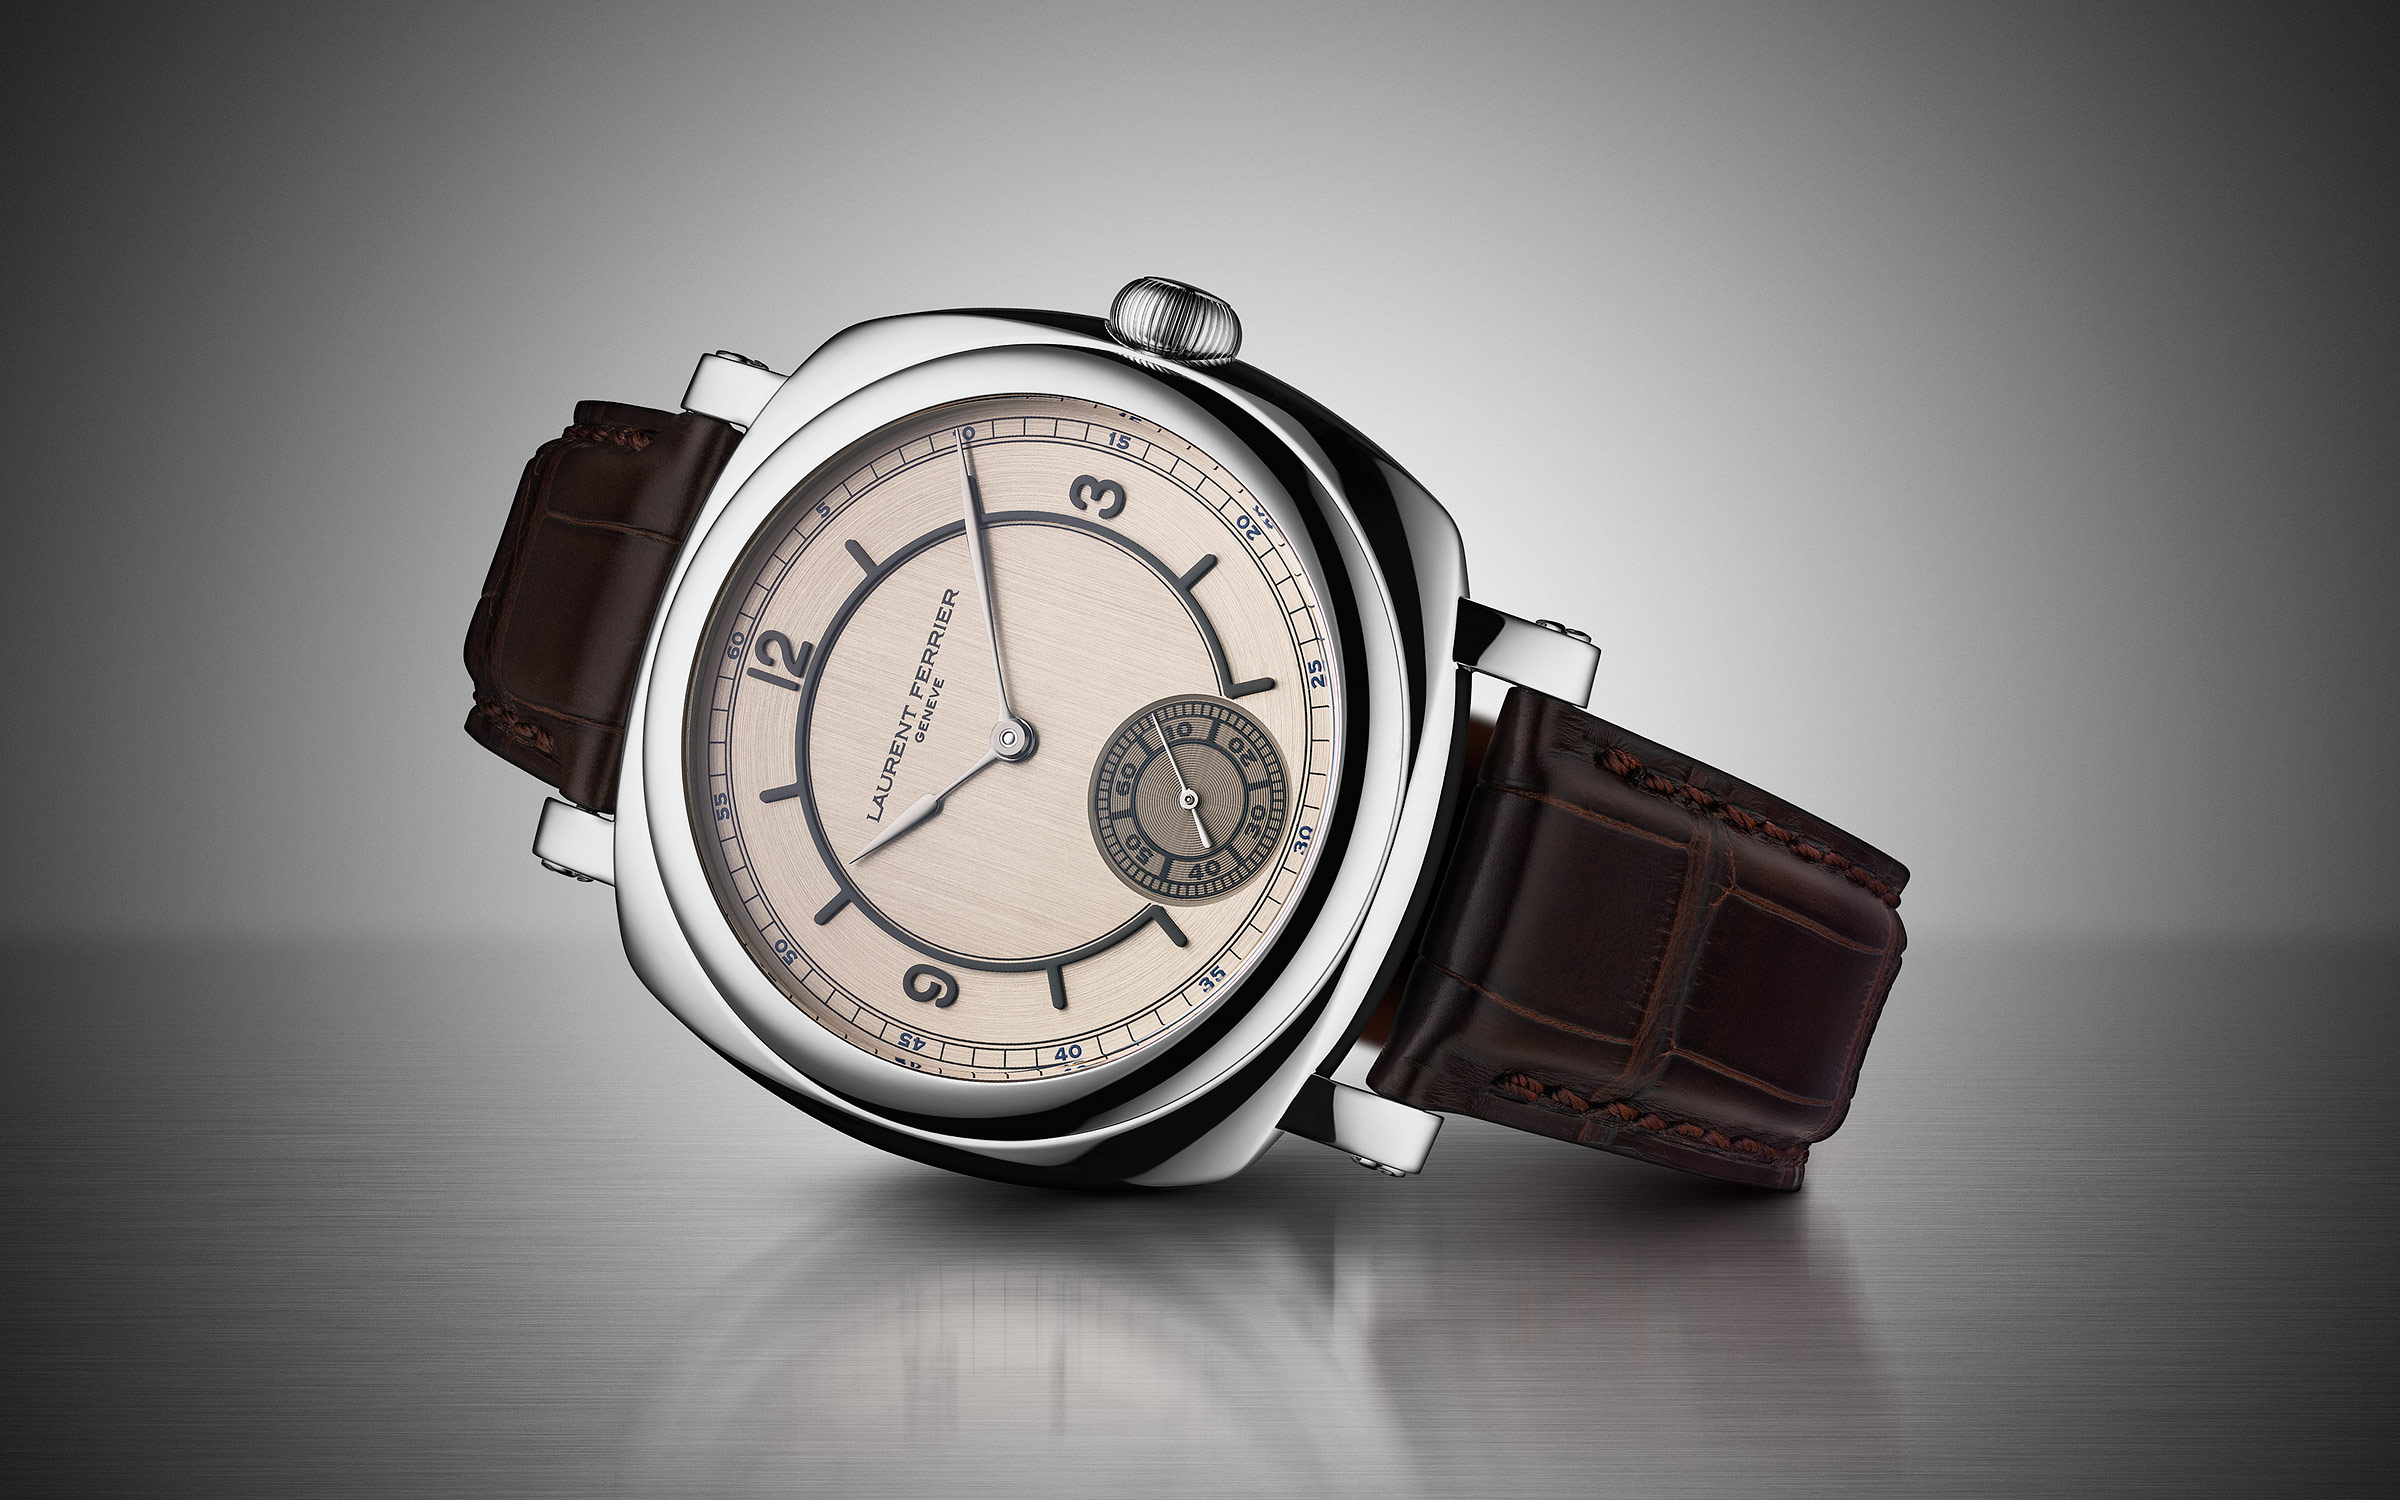 Still life photography and product photography of luxury watches